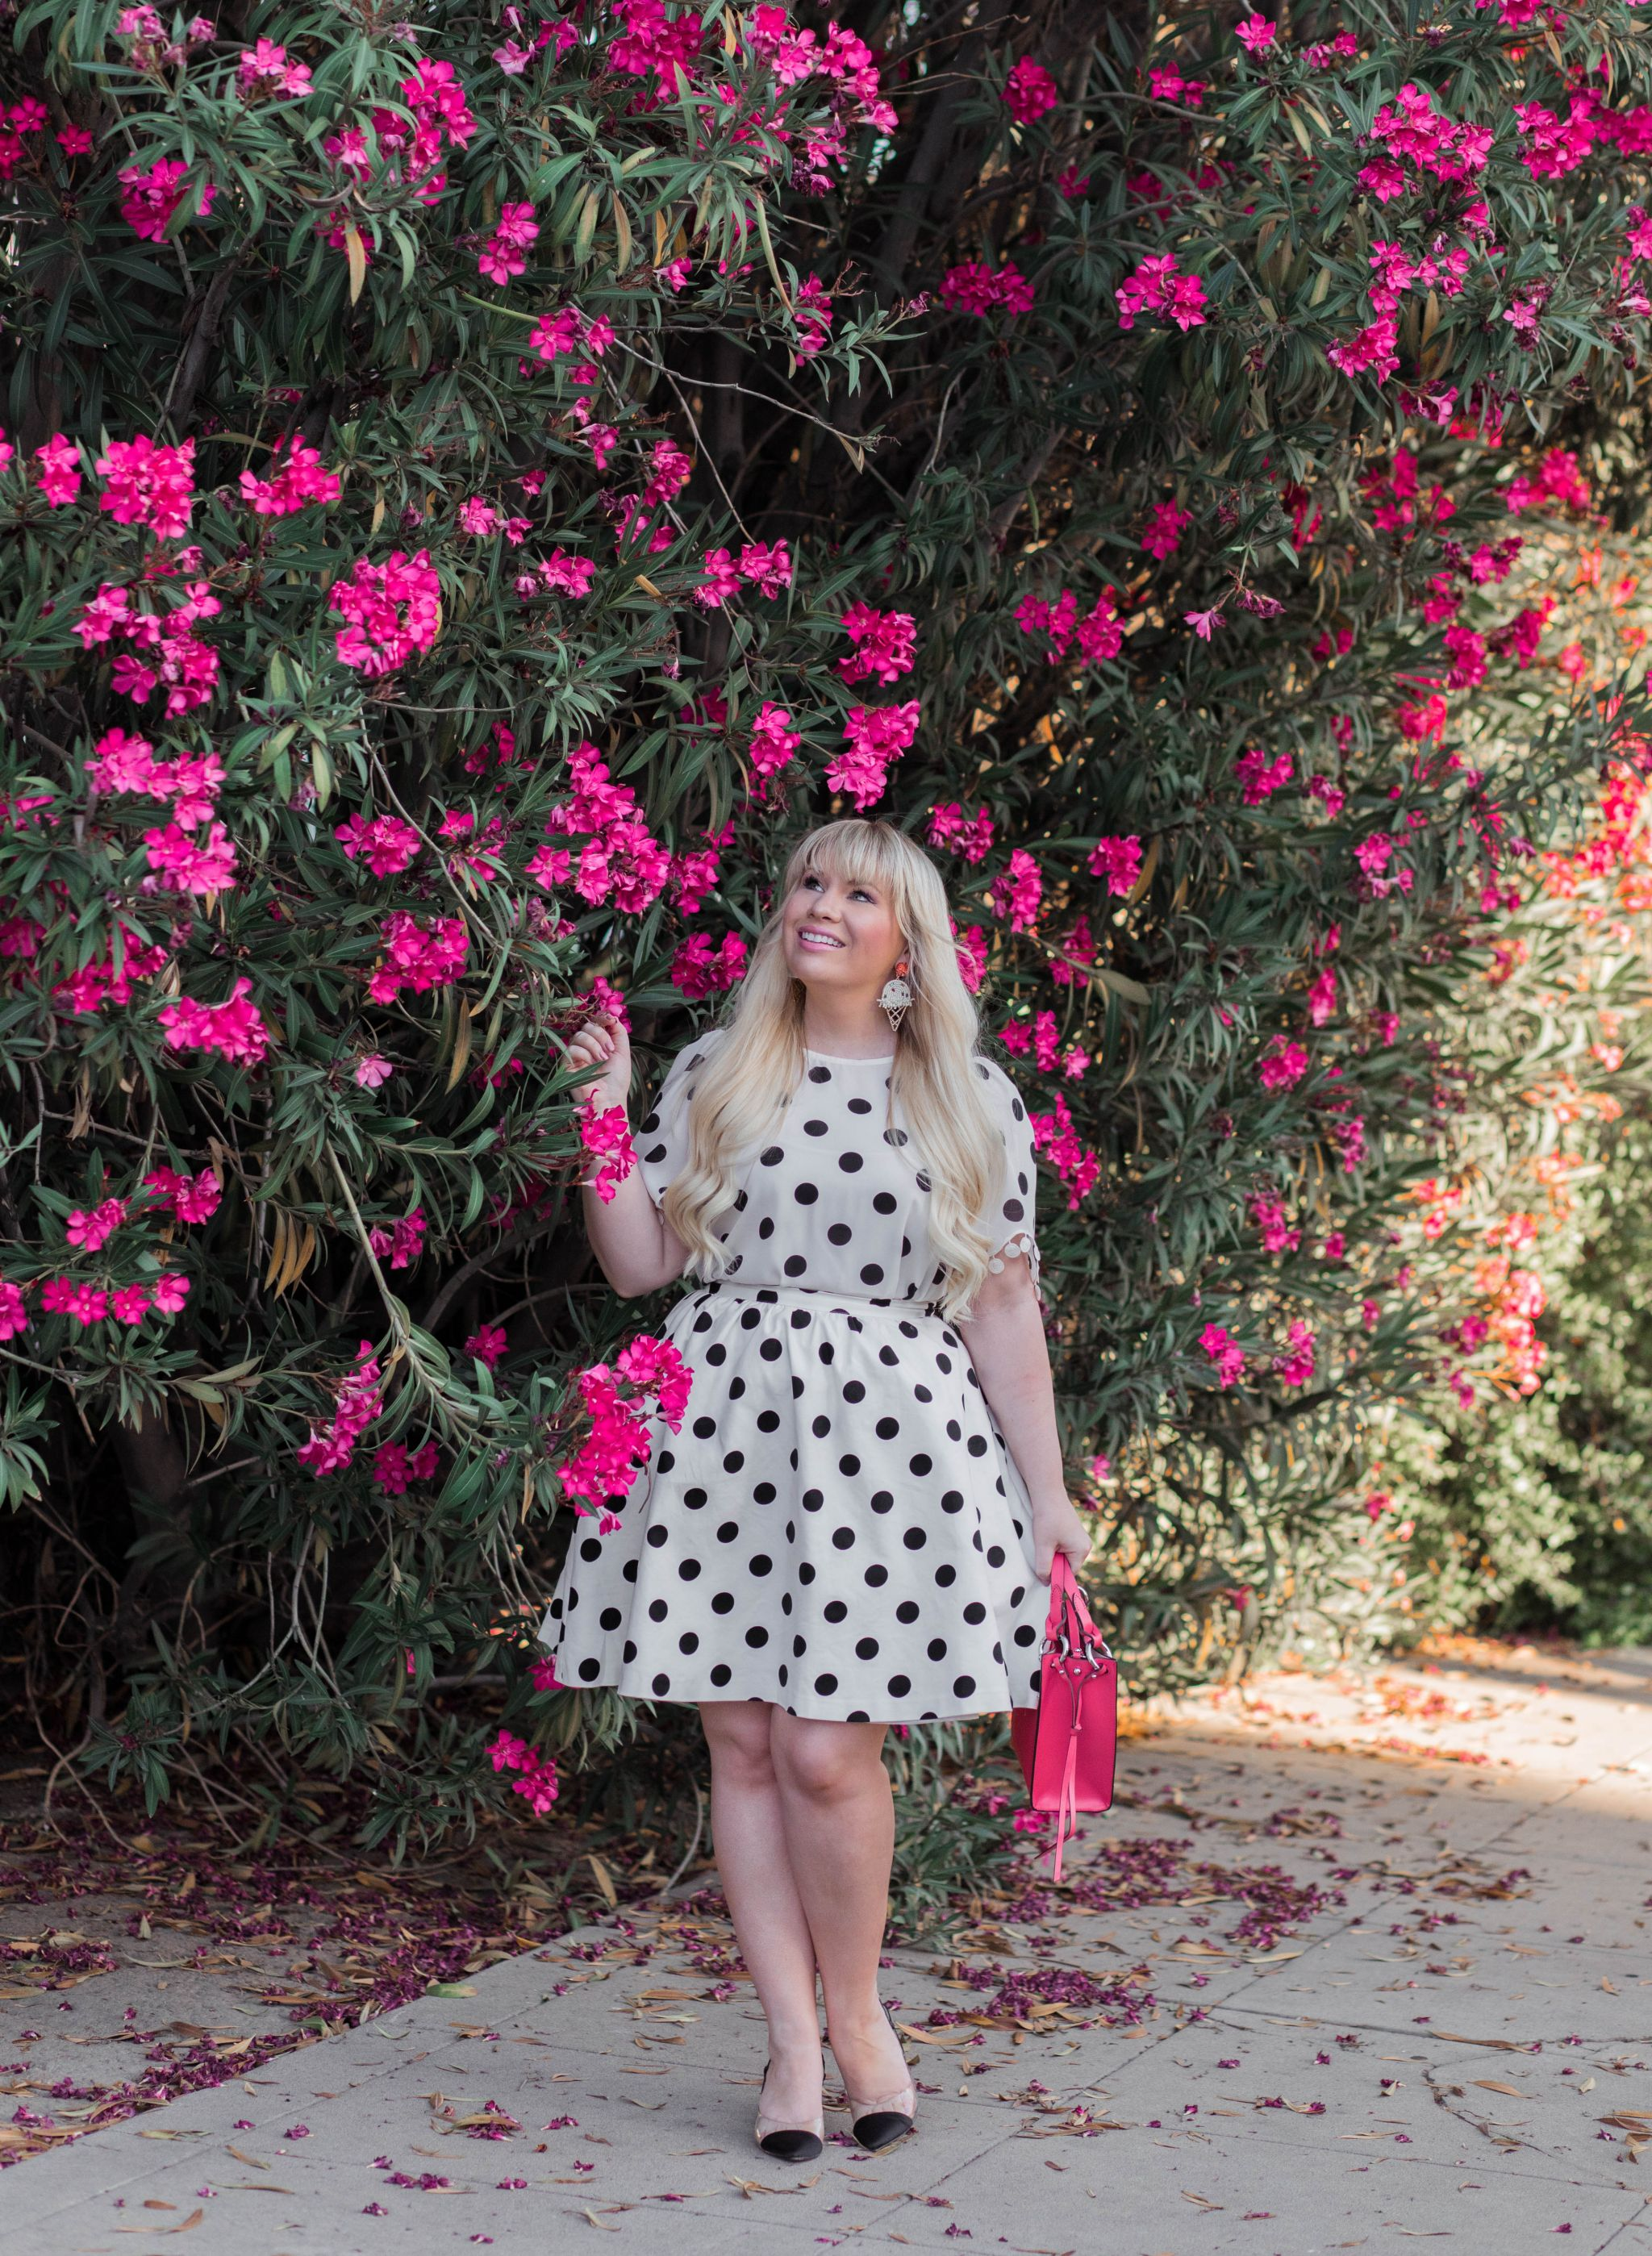 Fashion blogger Elizabeth Hugen wears a black and white polka dress with colorful summer outfit accessories.